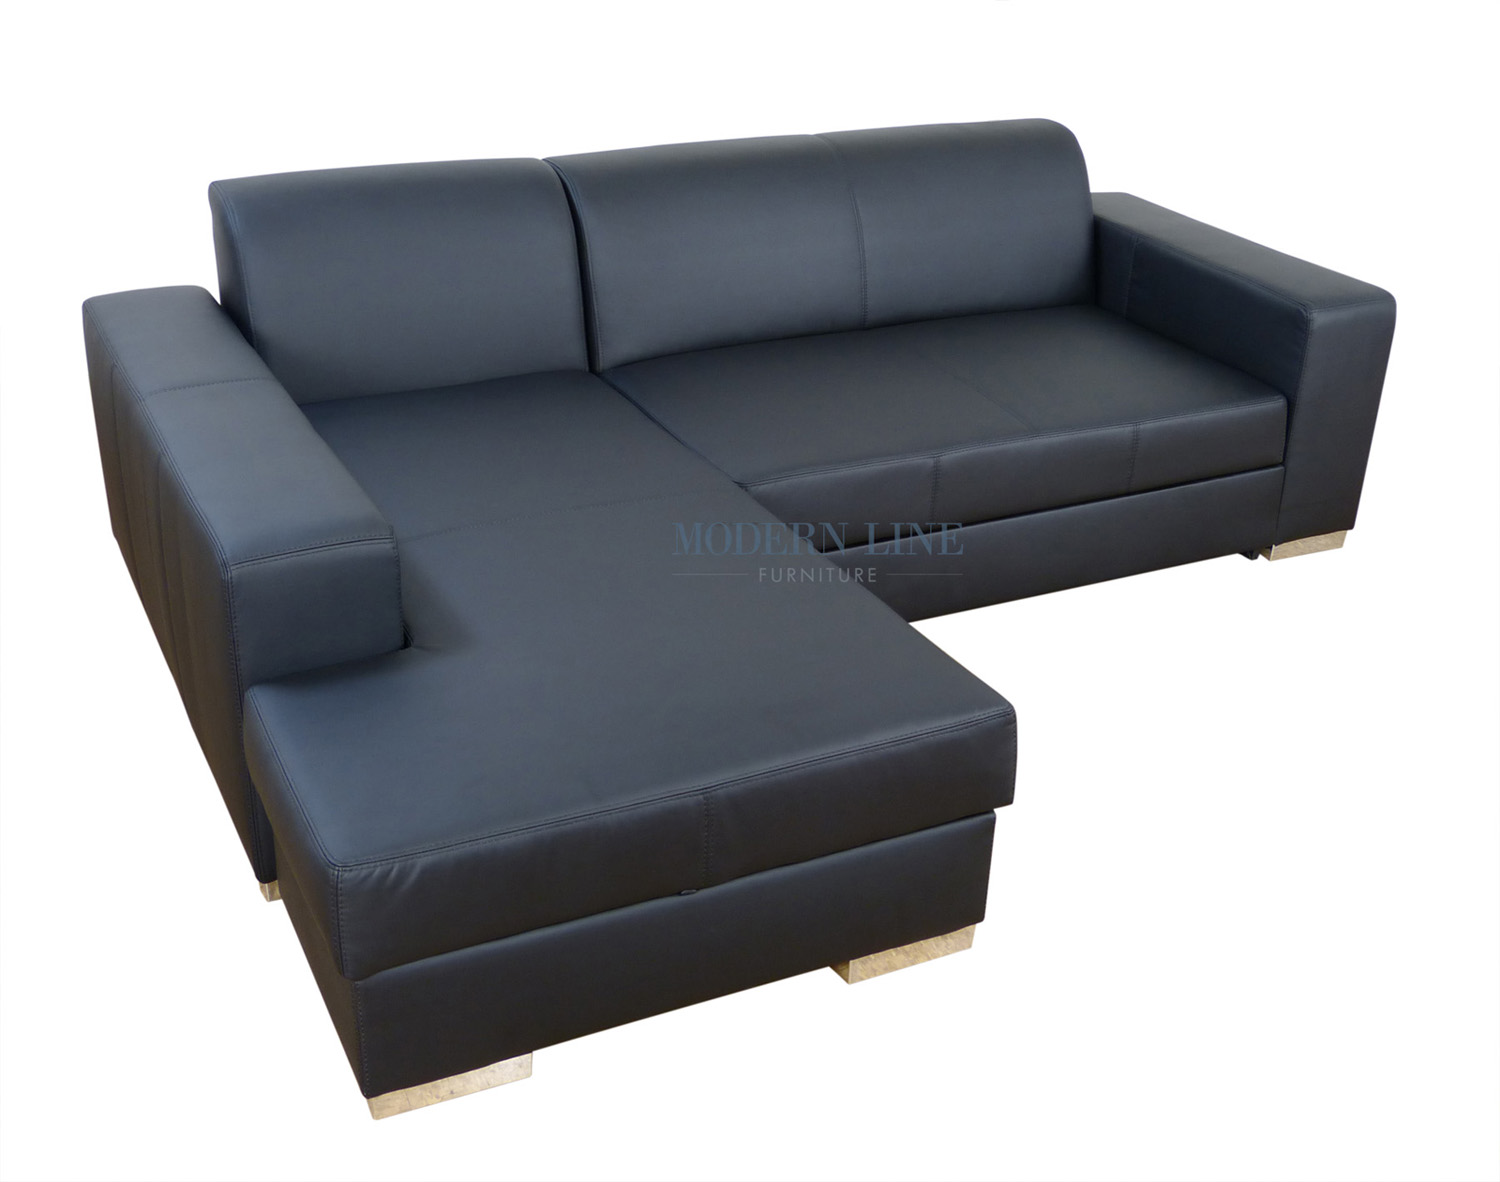 Modern Line Furniture - Commercial Furniture - Custom Made Furniture | Modern Leather or Fabric Sectional Sofa Sleeper With Storage  sc 1 st  Modern Line Furniture : sectional sofa with storage and sleeper - Sectionals, Sofas & Couches